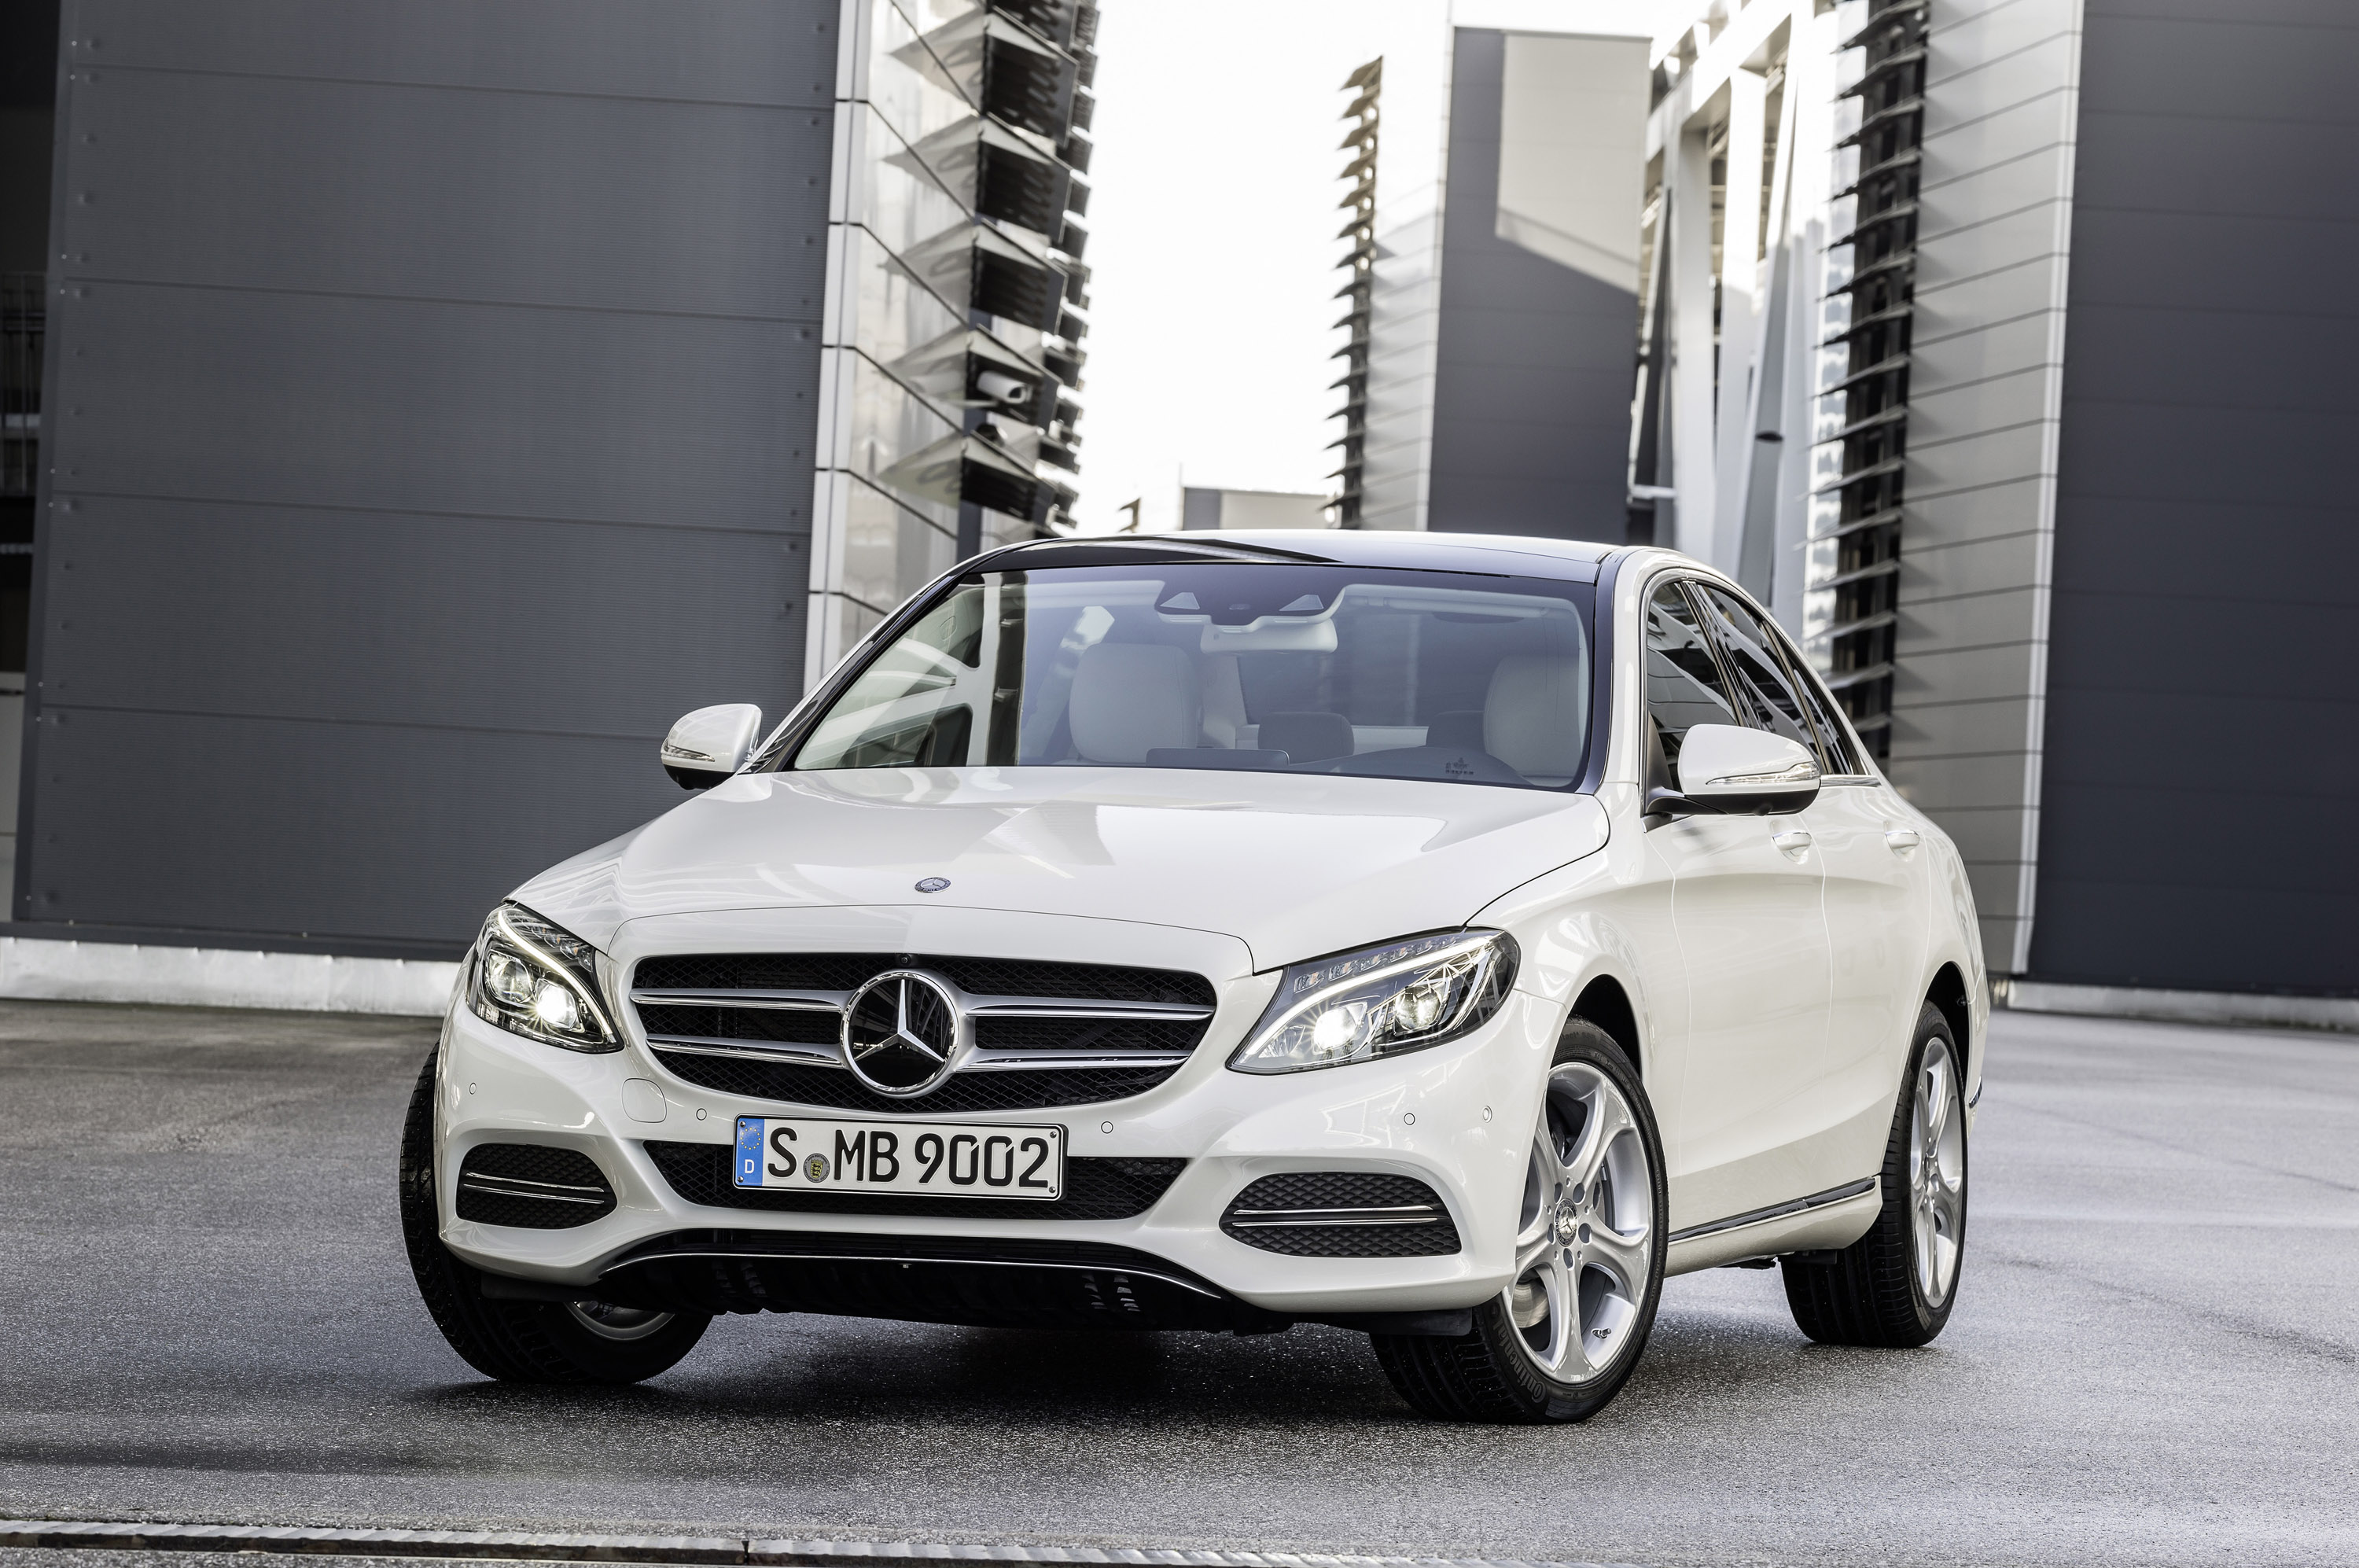 2015 mercedes benz c class sedan us pricing announced. Black Bedroom Furniture Sets. Home Design Ideas